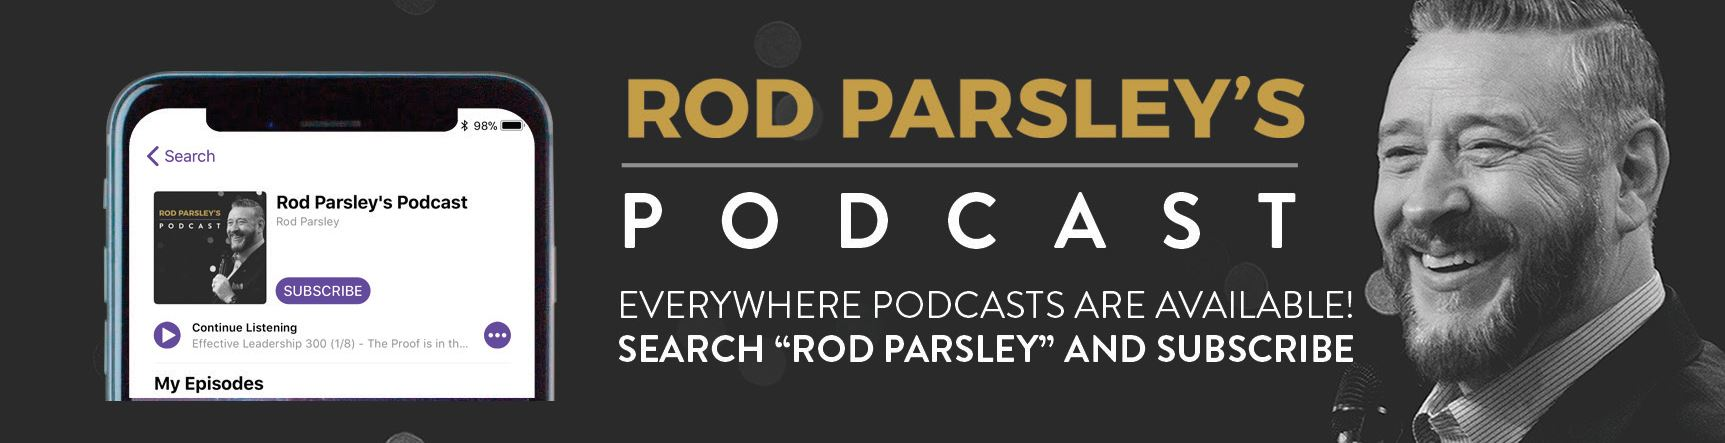 Rod Parsley's Podcast | Everywhere podcasts are available! | Search